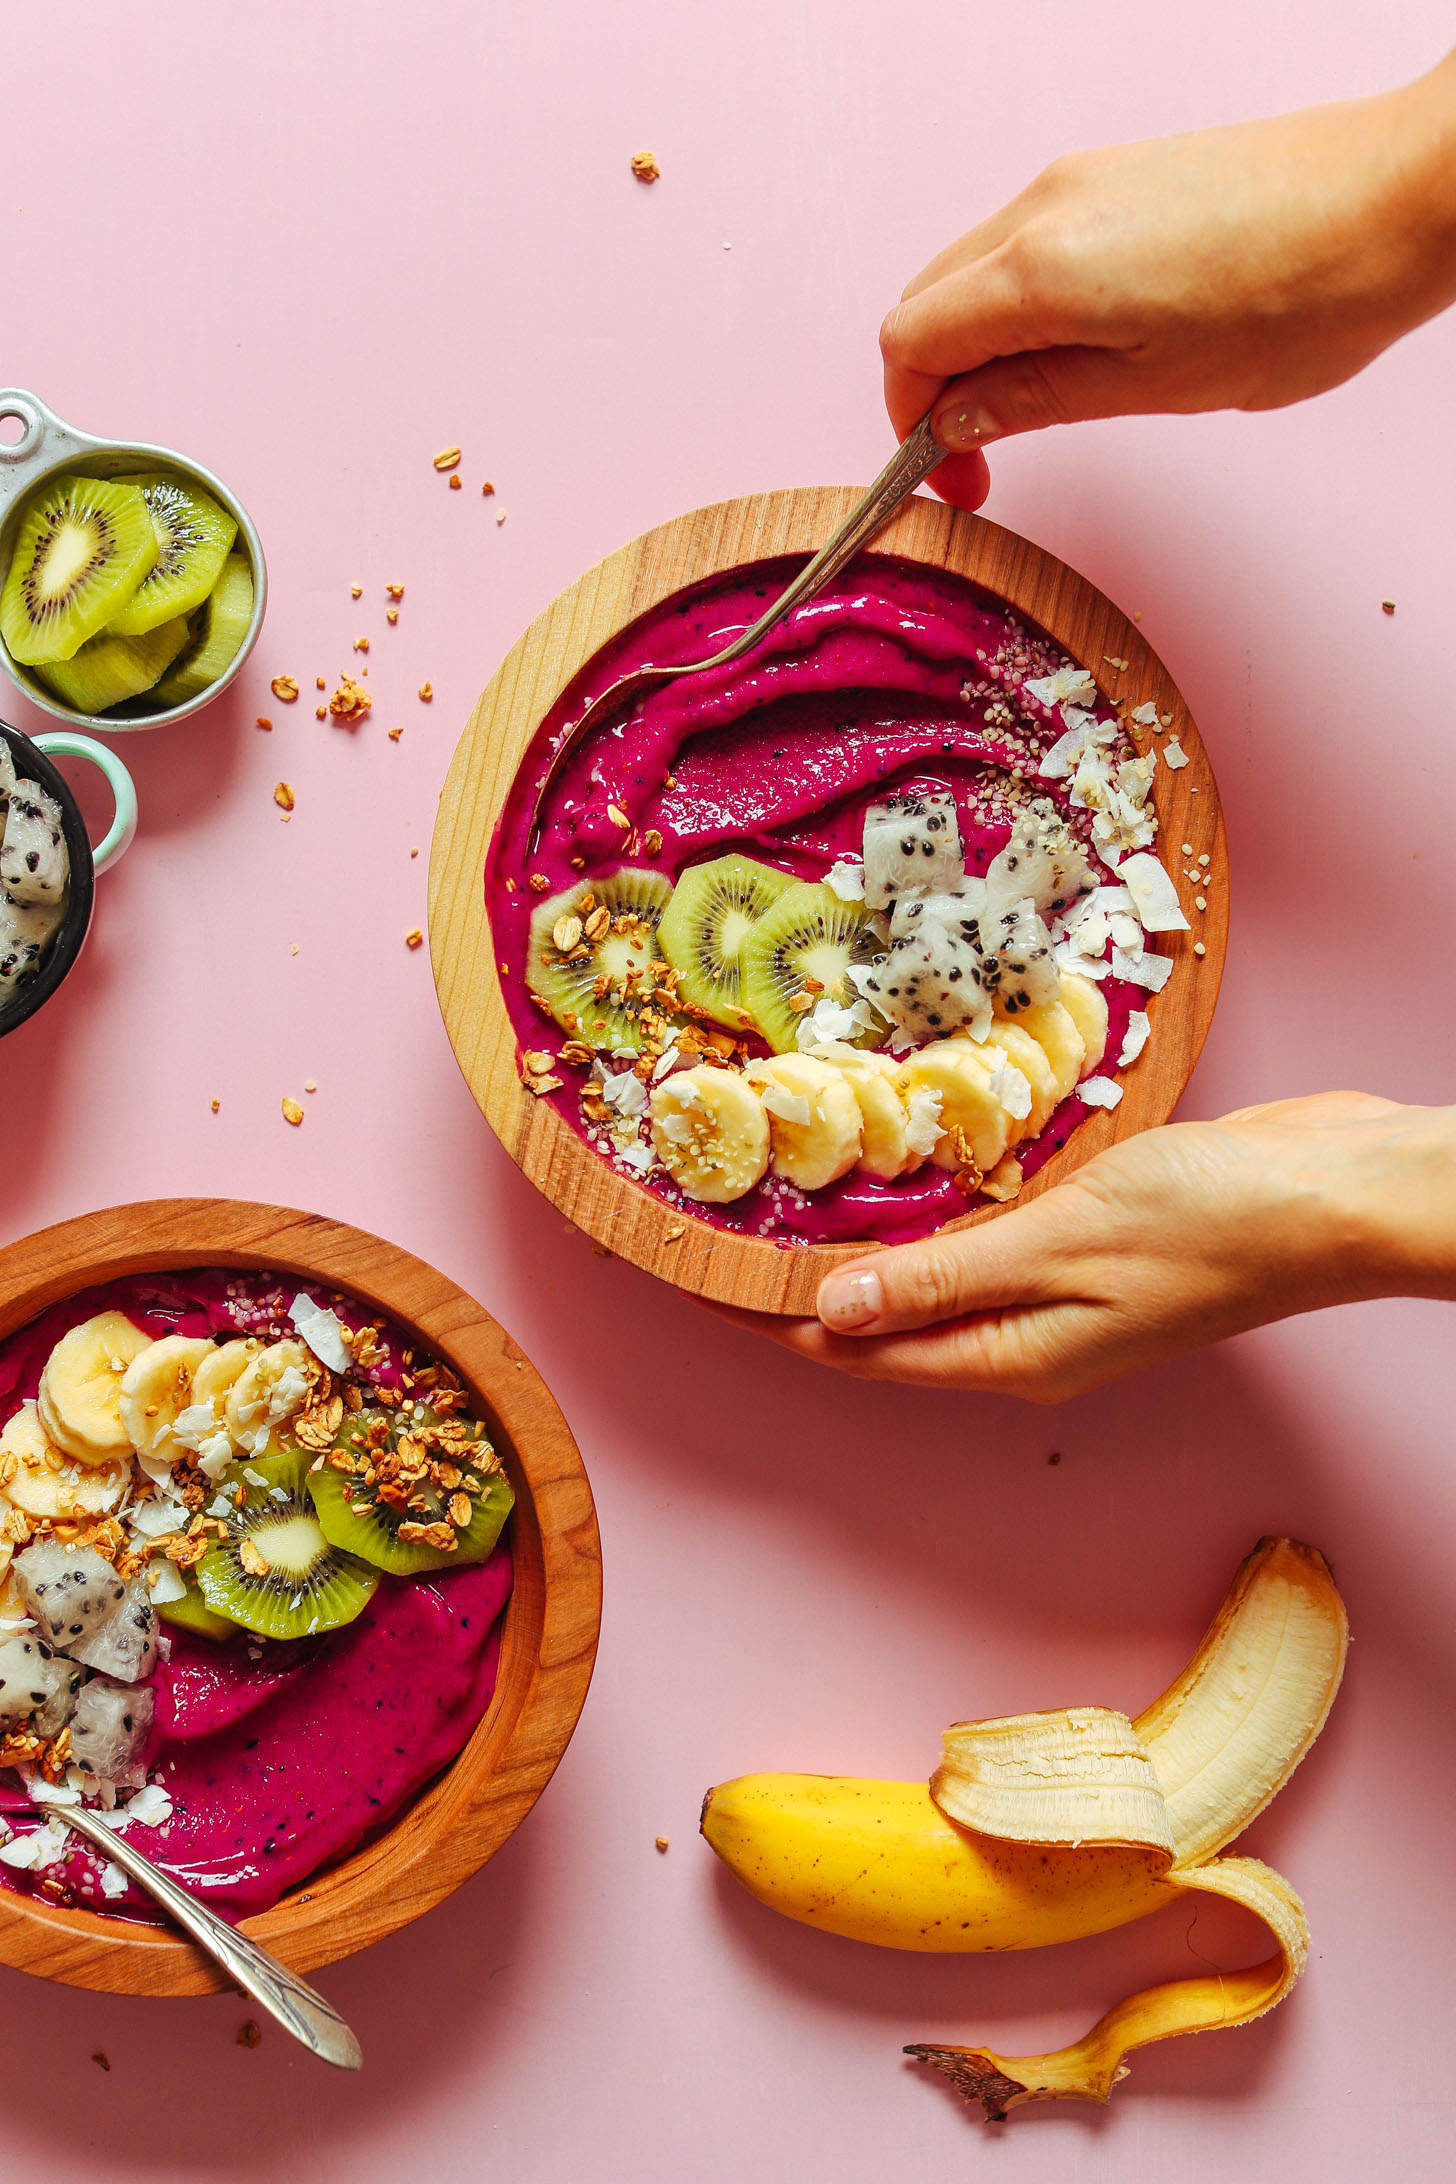 Grabbing a spoonful of our vegan Dragon Fruit Smoothie Bowl topped with fresh fruit, coconut, and granola